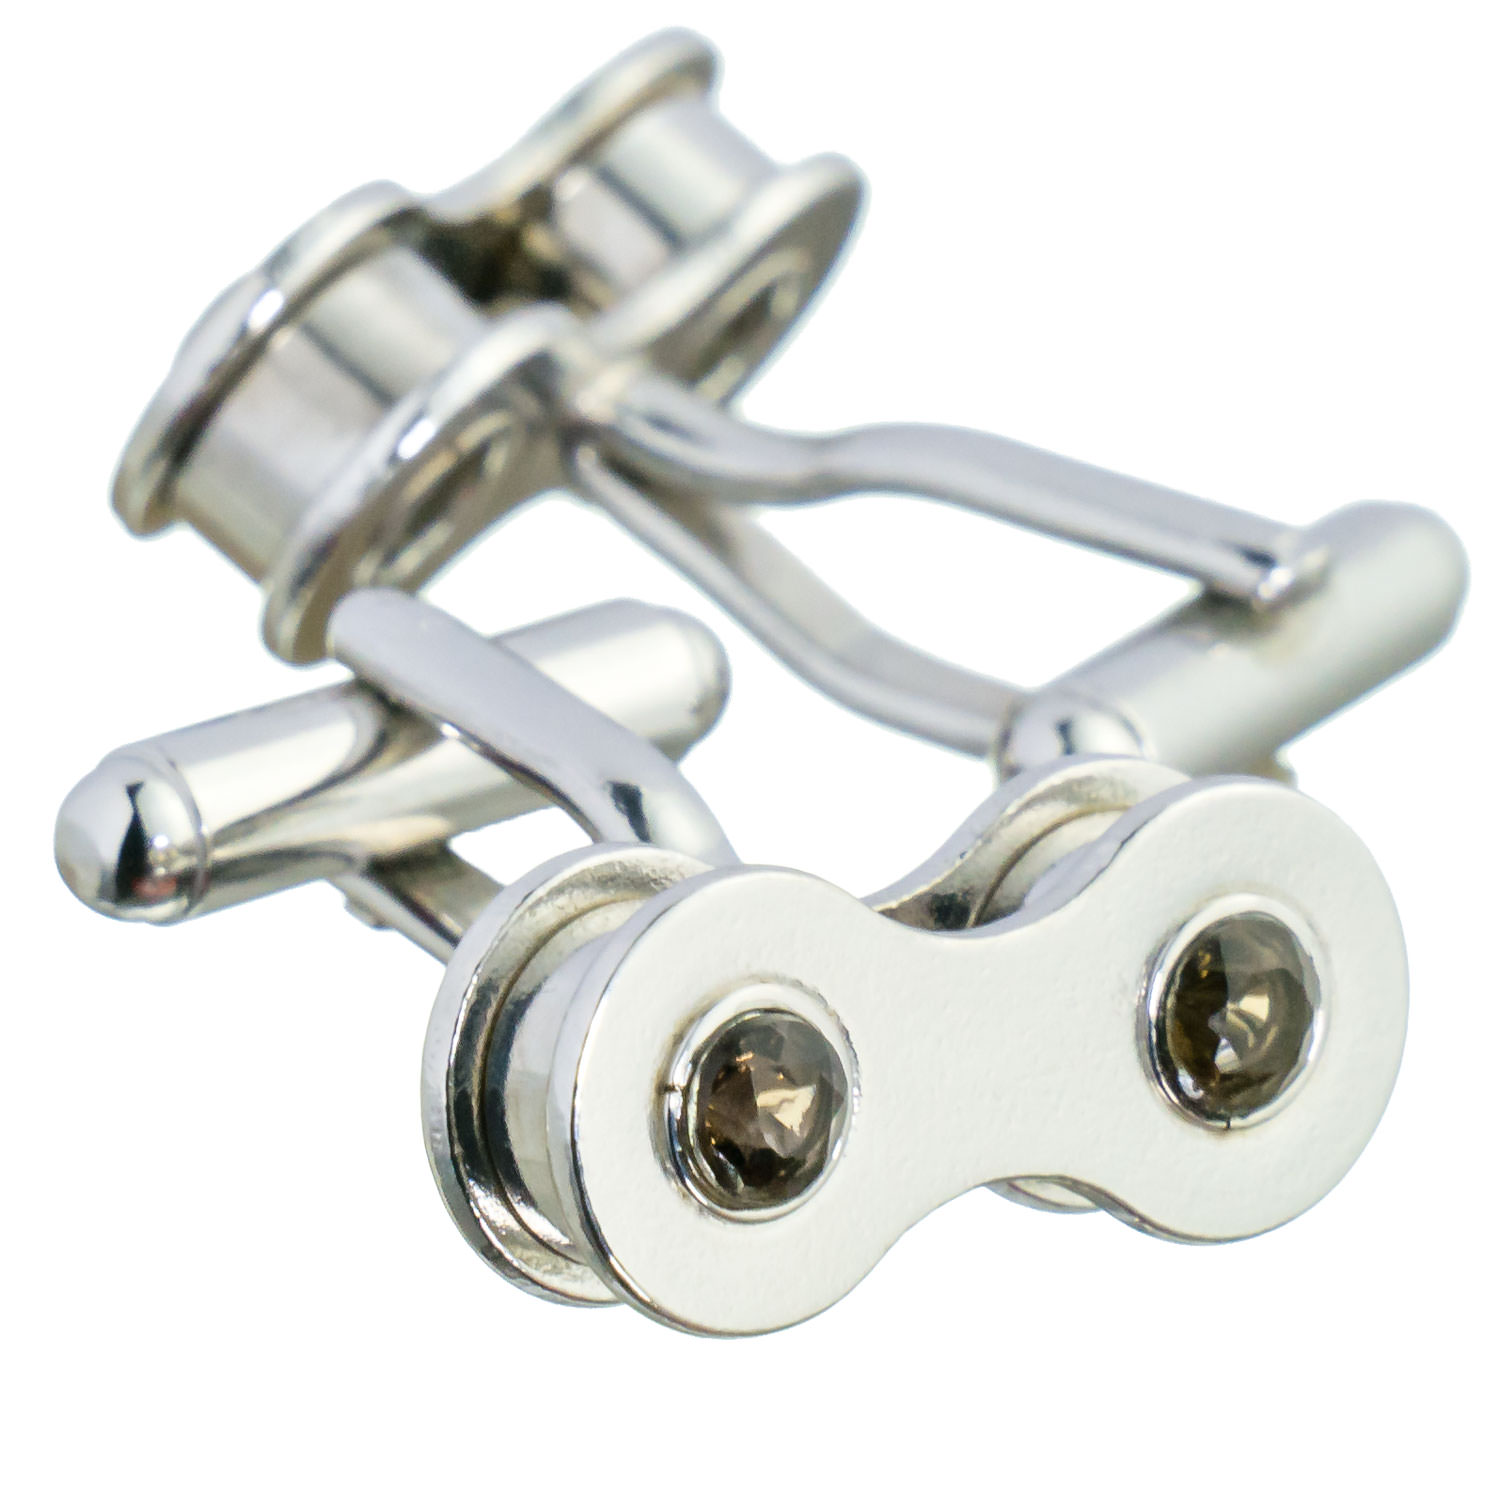 Silver cufflinks with smoky quartz. The contrast between the silver and quartz looks very modern.